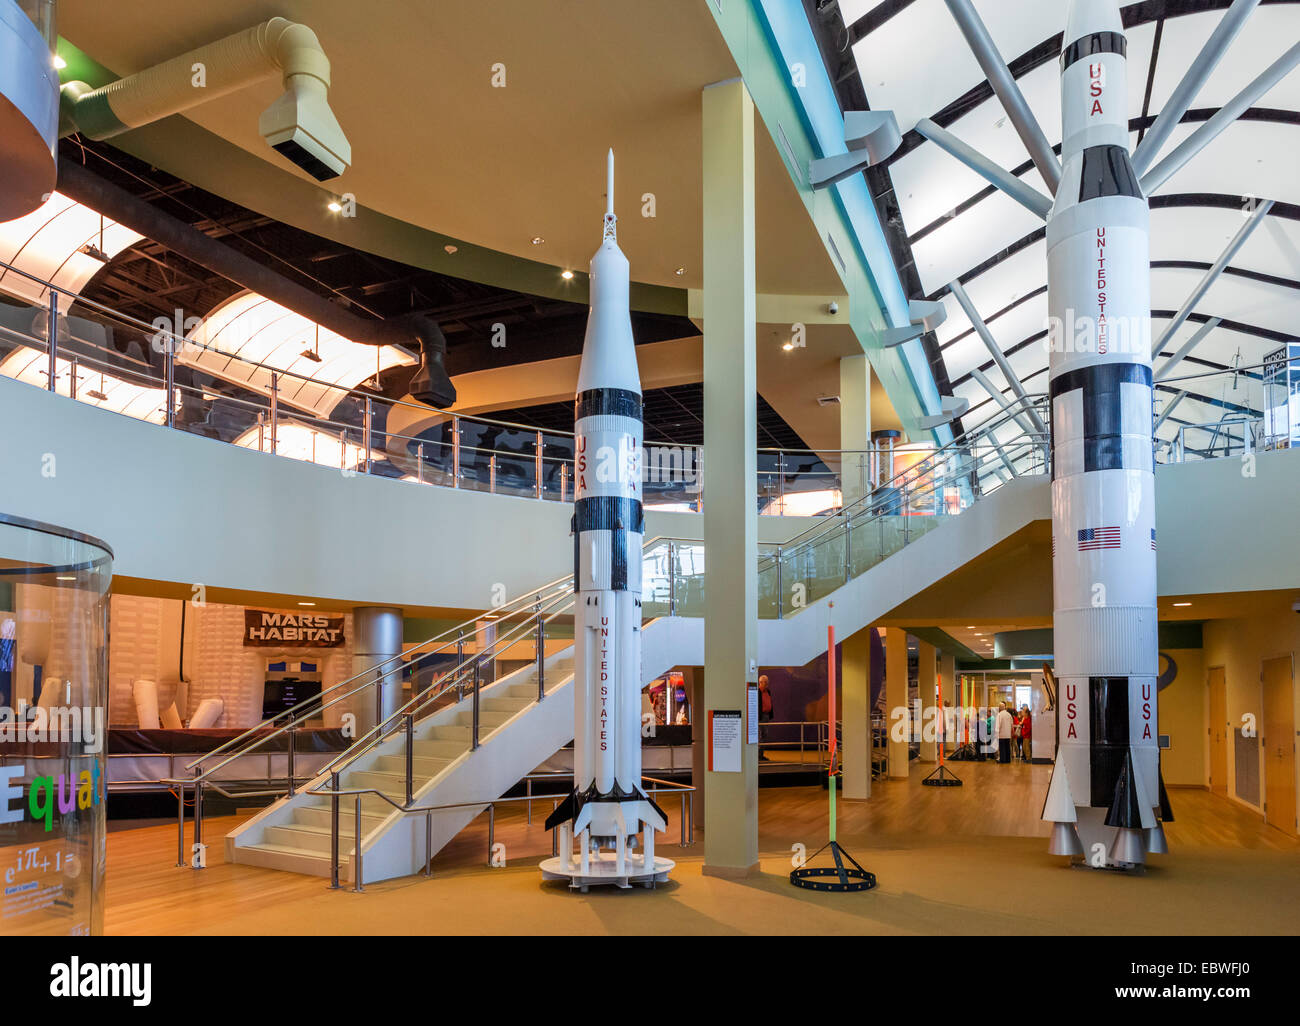 The Infinity Science Center at the John C Stennis Space Center, Hancock County, Mississippi, USA - Stock Image